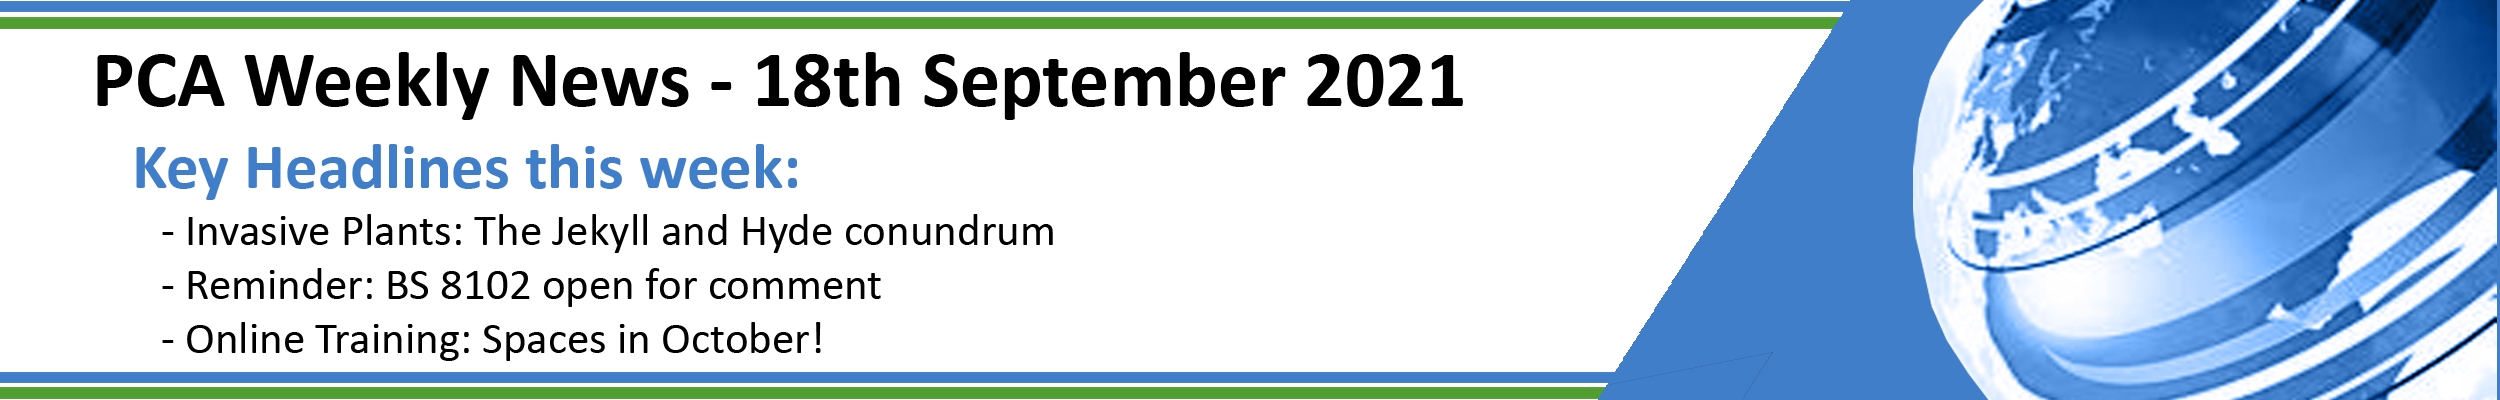 PCA Weekly News - 18th September 2021